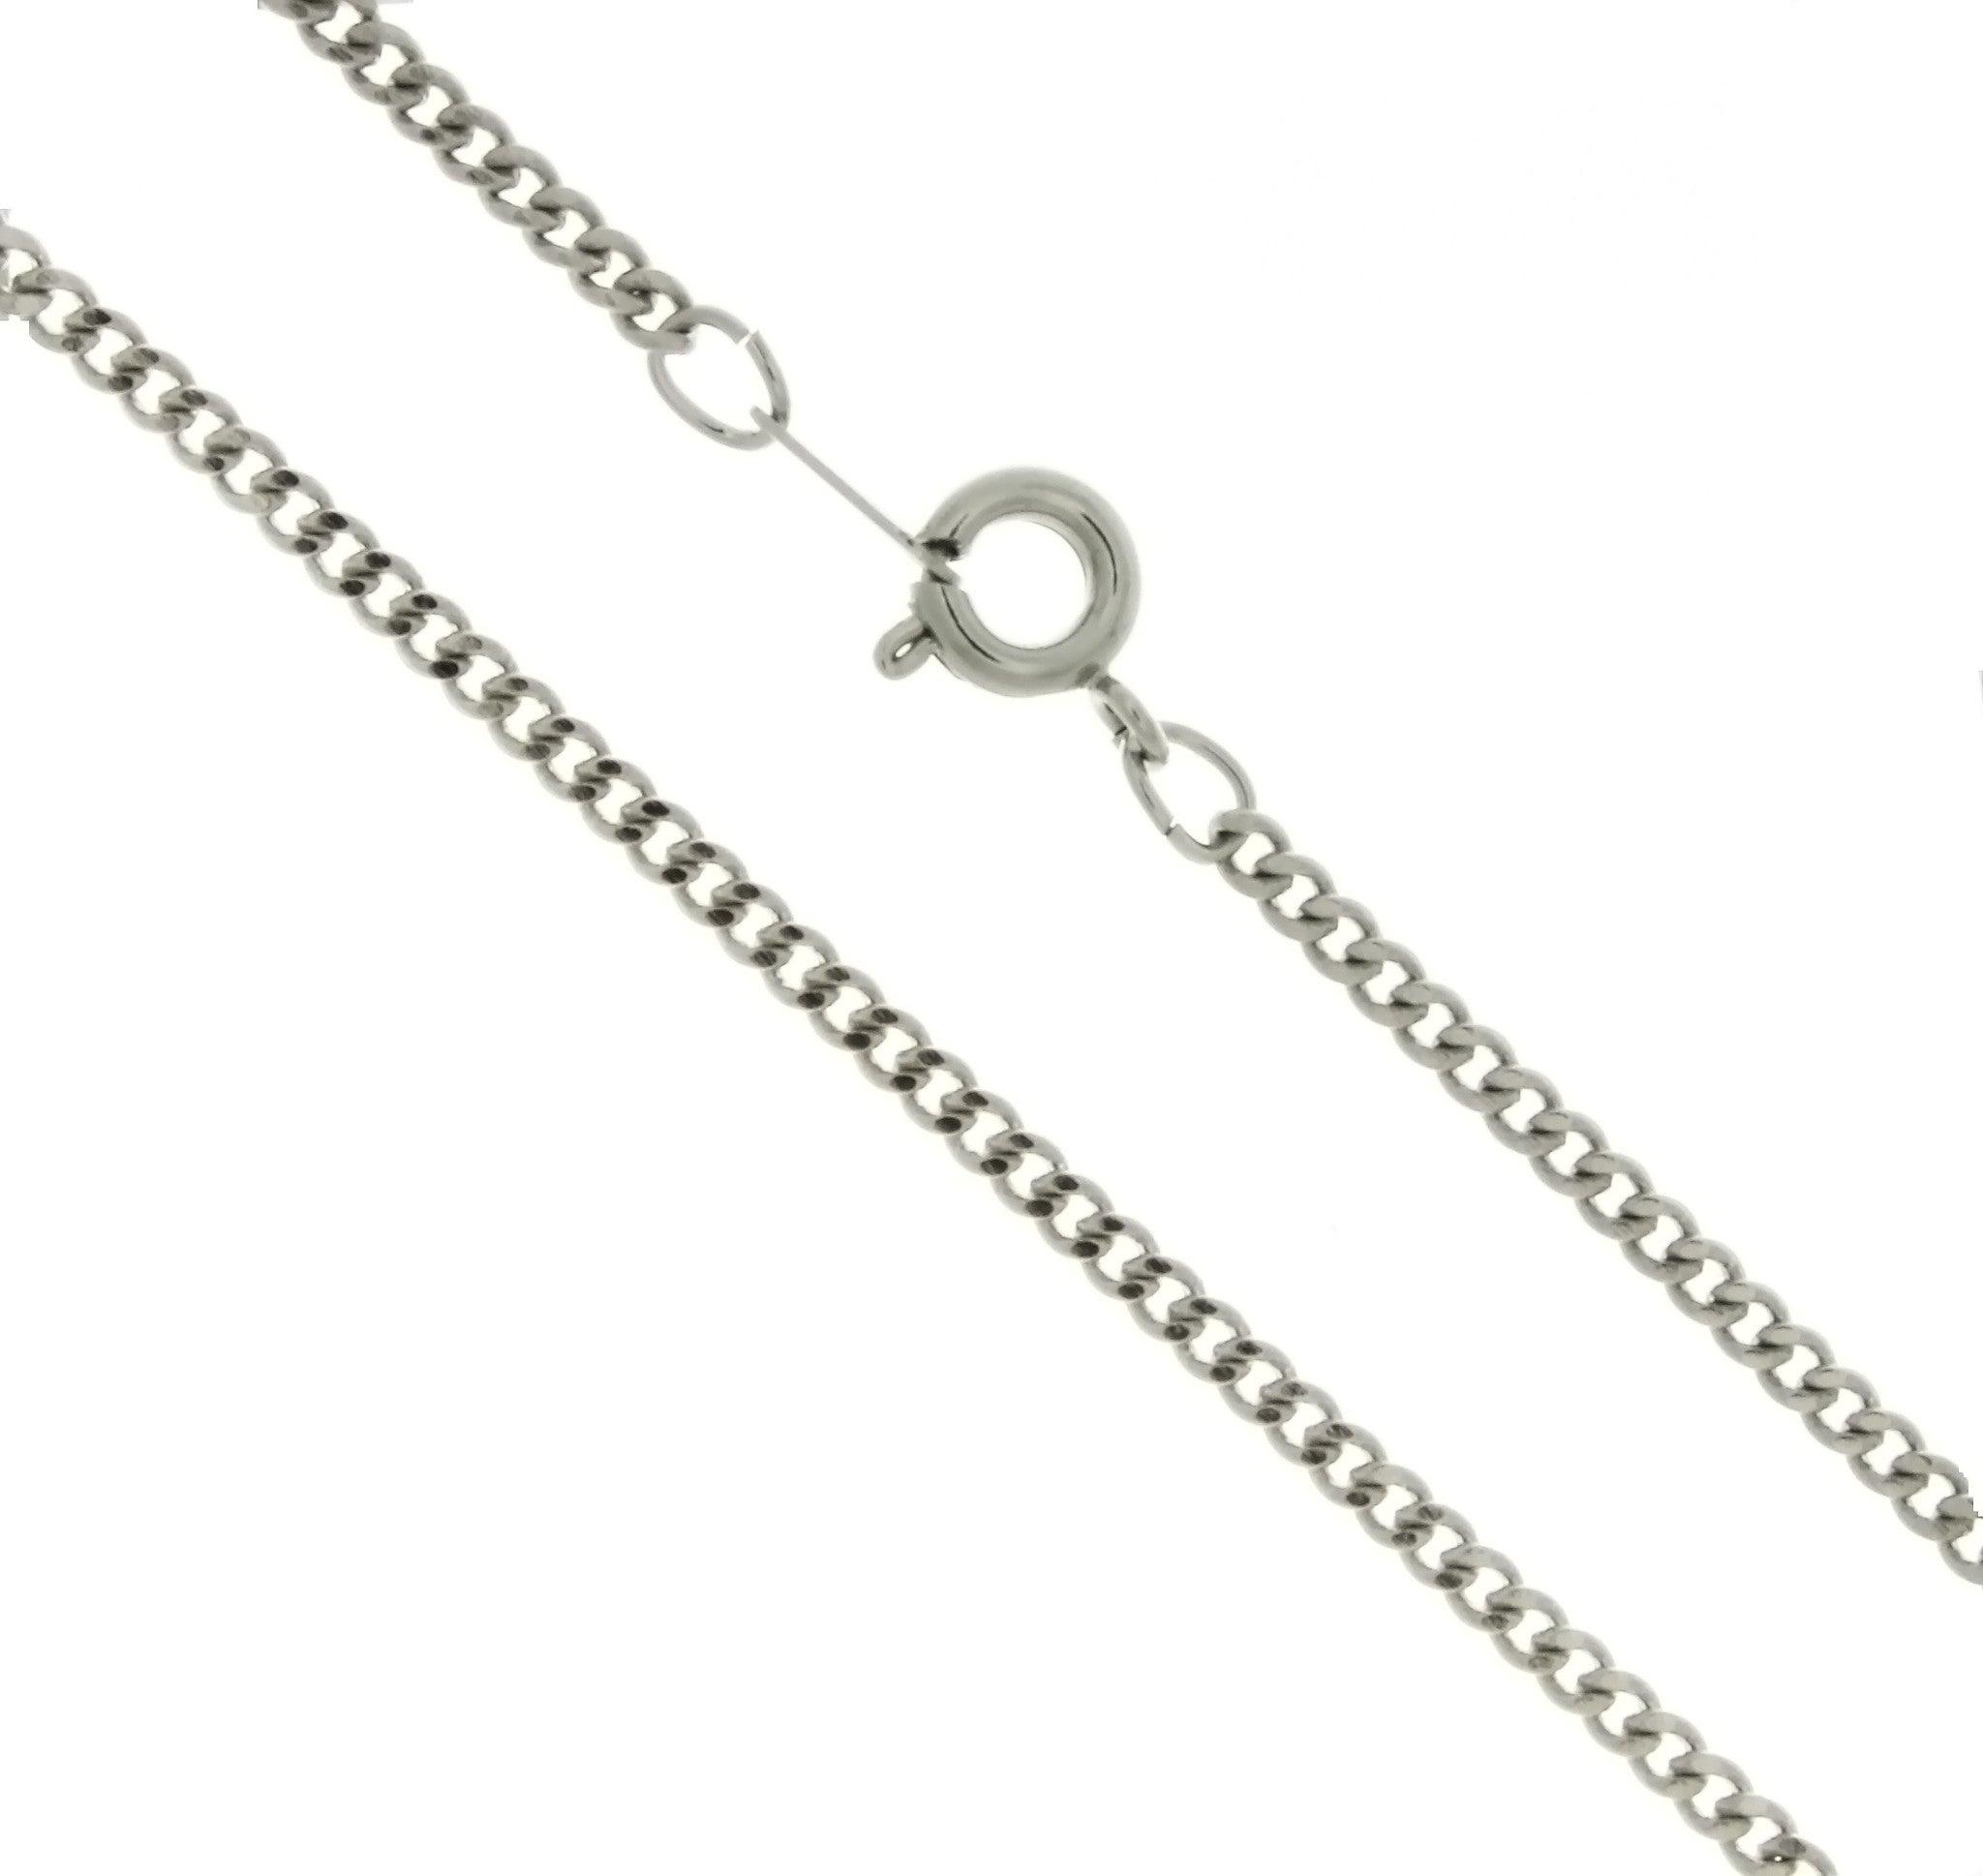 CHAIN NECKLACE CURB SILVER 2.4 MM X 24 IN (DOZ)